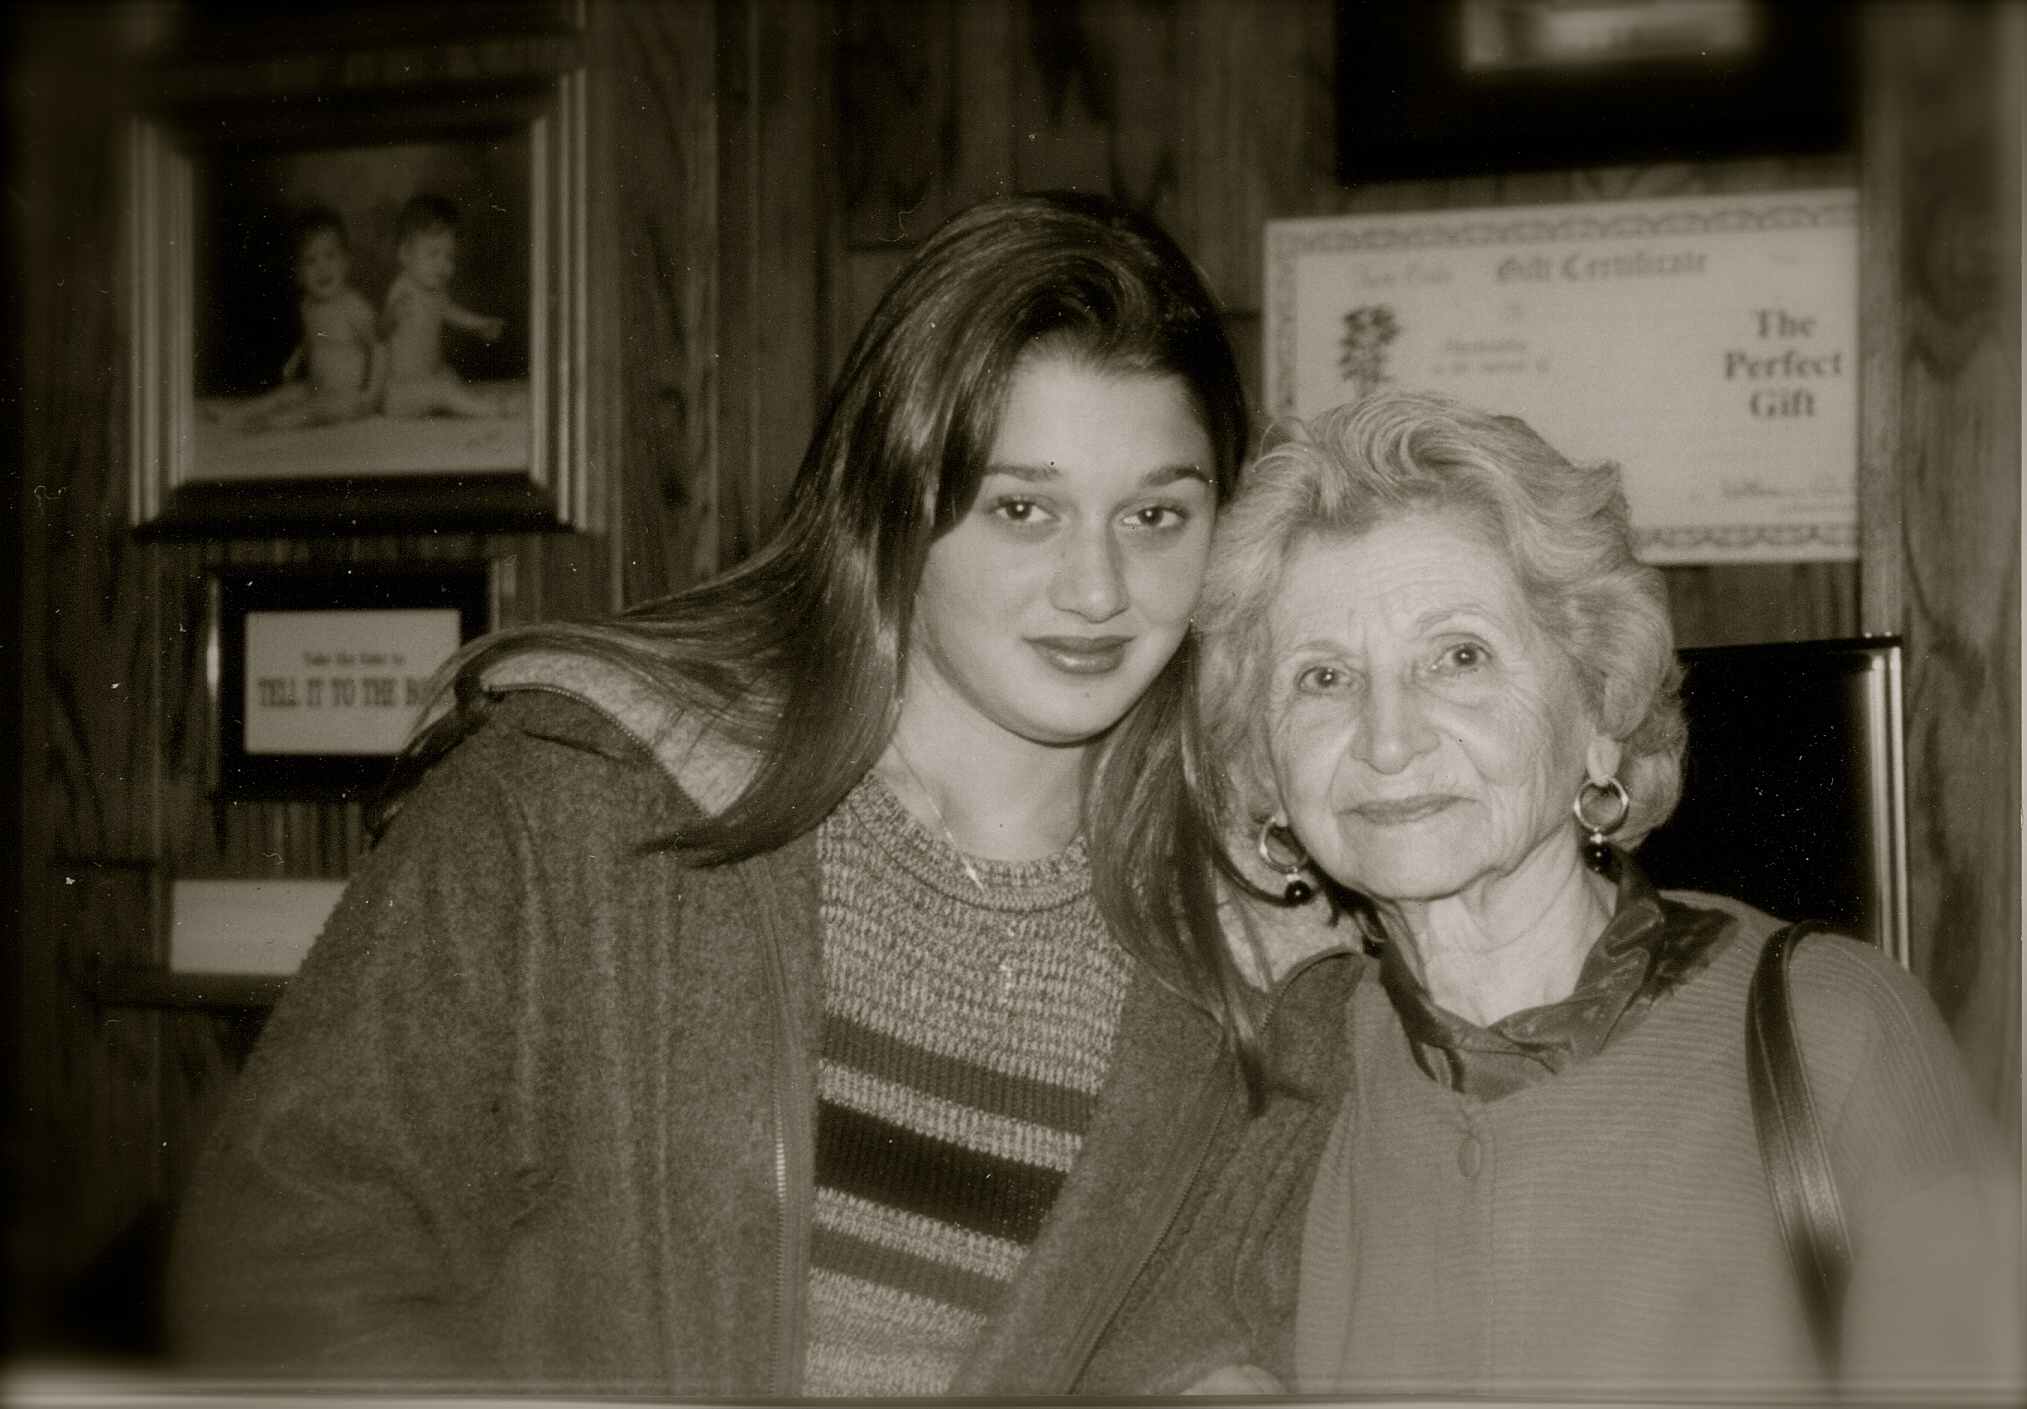 Mafalda Caliri with her great granddaughter, Erica Laros, circa 1998.